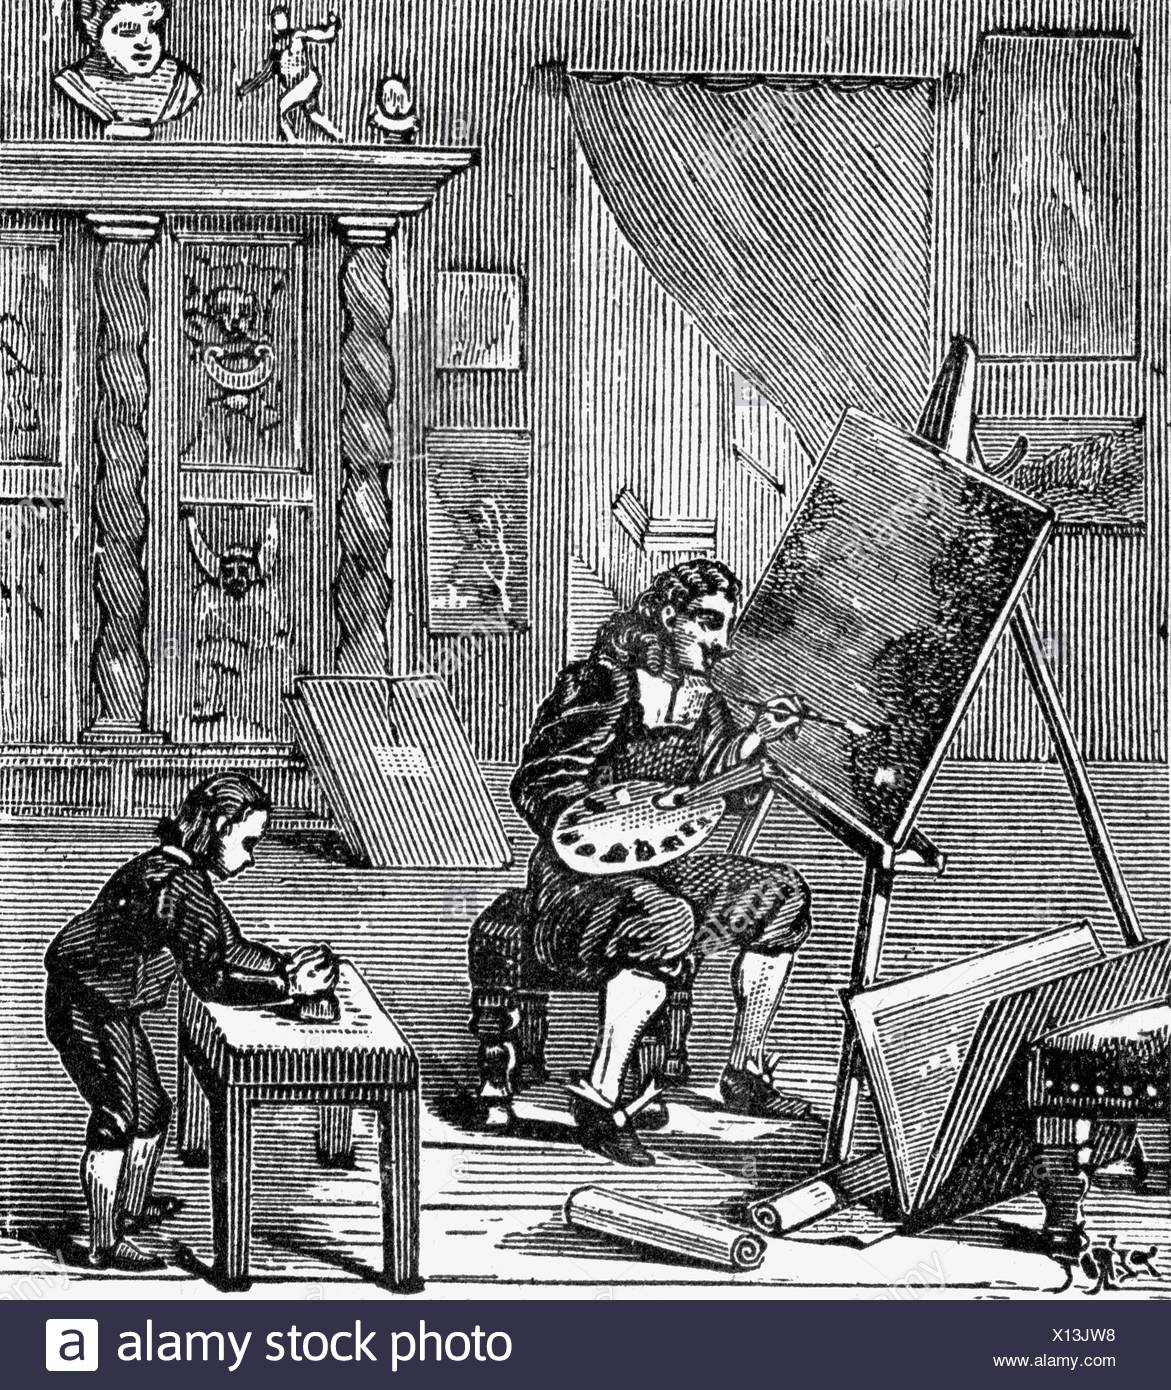 Lorrain, Claude, 1600 - 23.11.1682, French painter, working, wood engraving, 19th century, , Additional-Rights-Clearances-NA - Stock Image